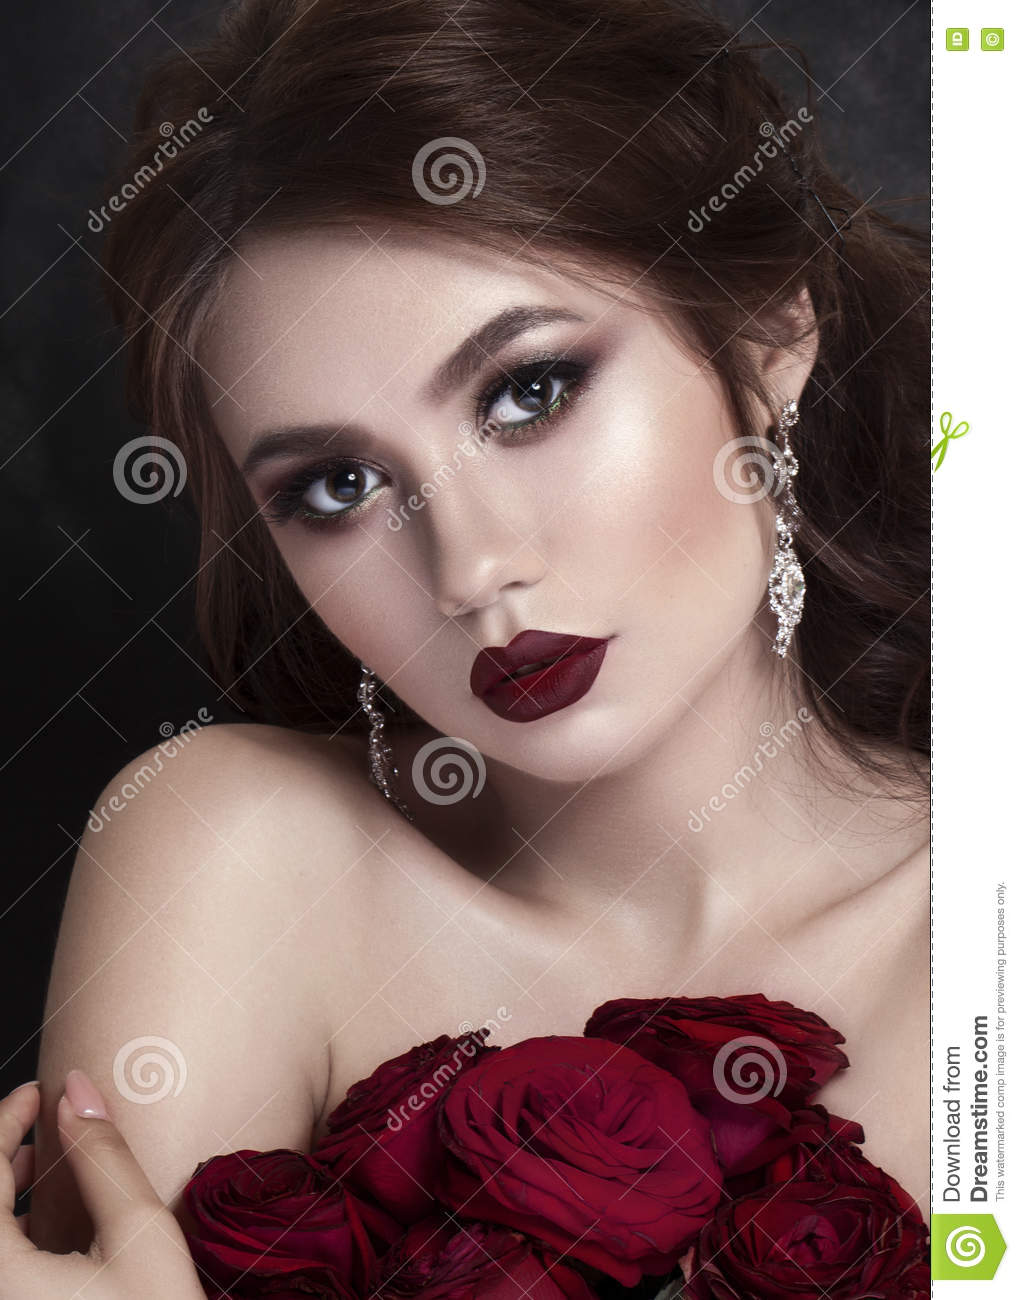 Beauty Fashion Model Girl Portrait With Red Roses Lips